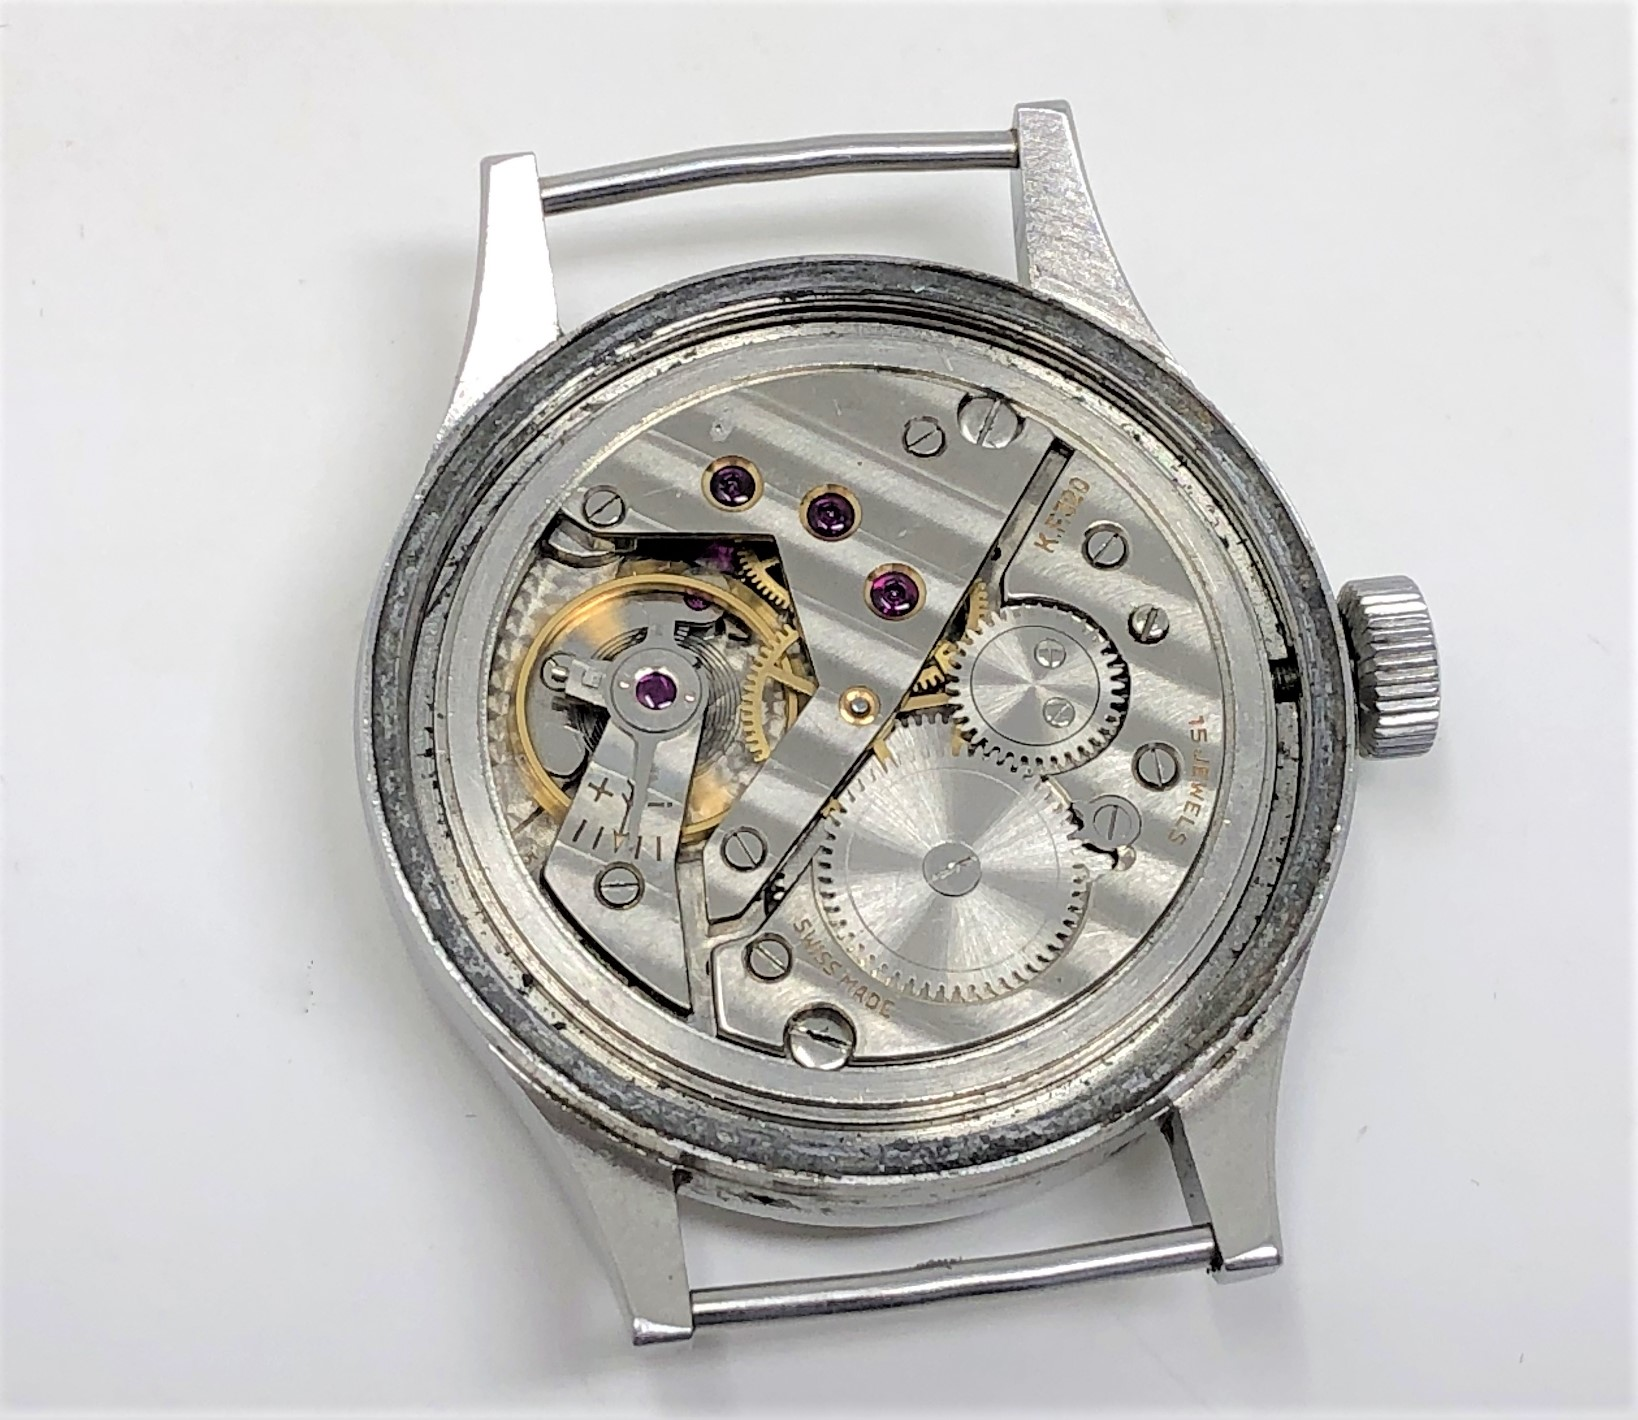 A very rare stainless steel British Military Grana wristwatch, - Image 11 of 11